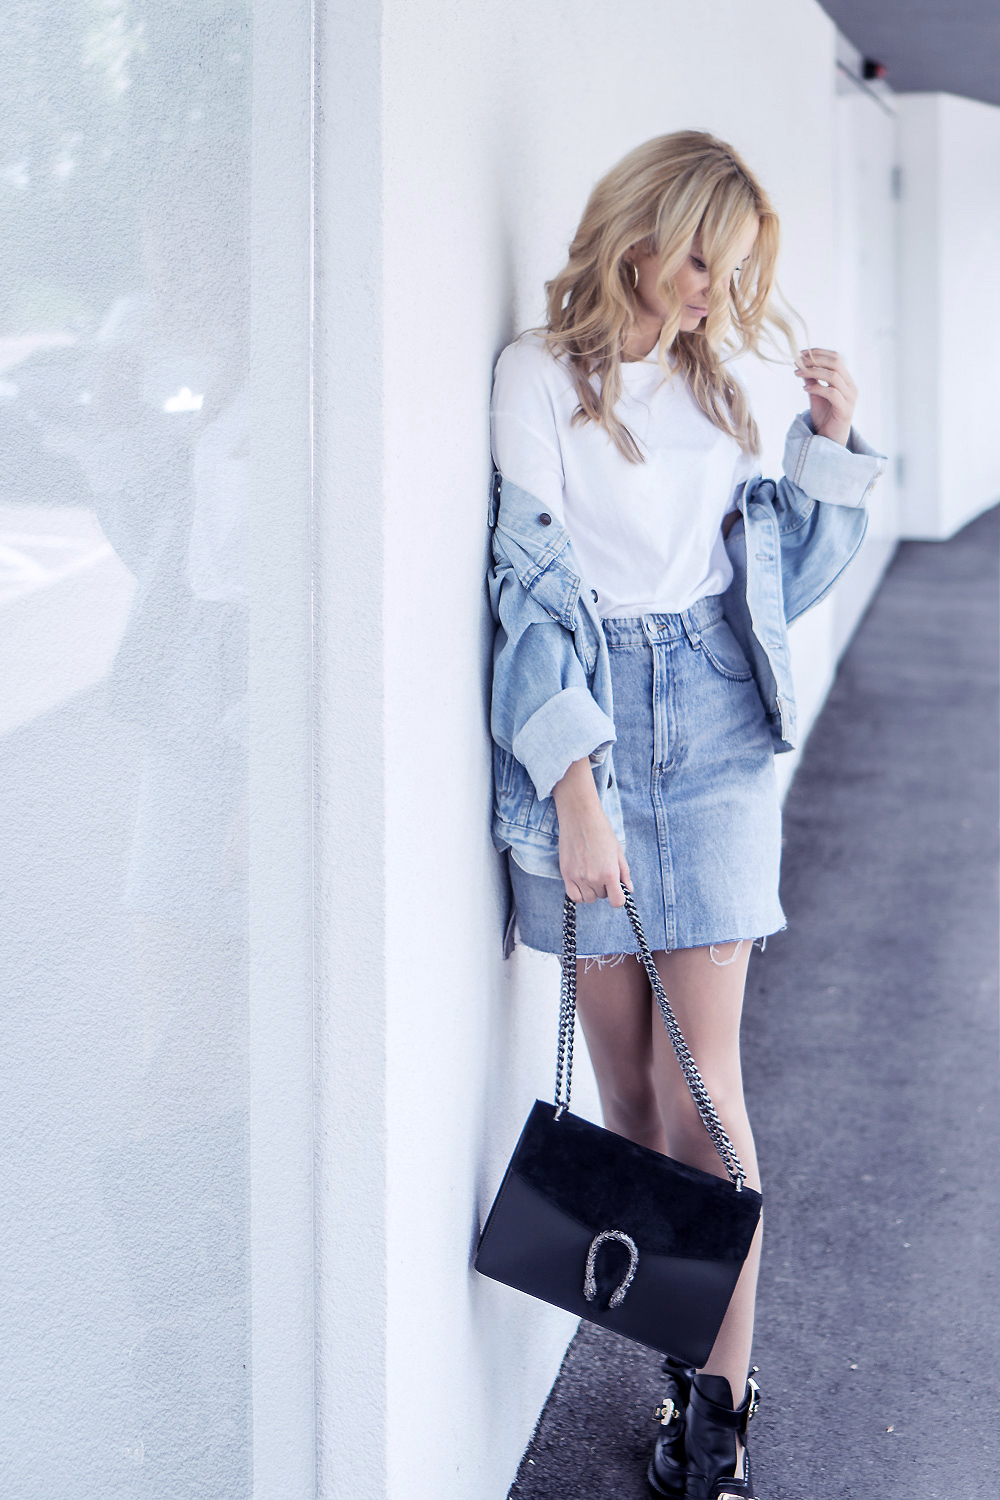 denim outfit skirt levis vintage jacket balenciaga shoes casual ootd street style fashion tumblr basic clothes